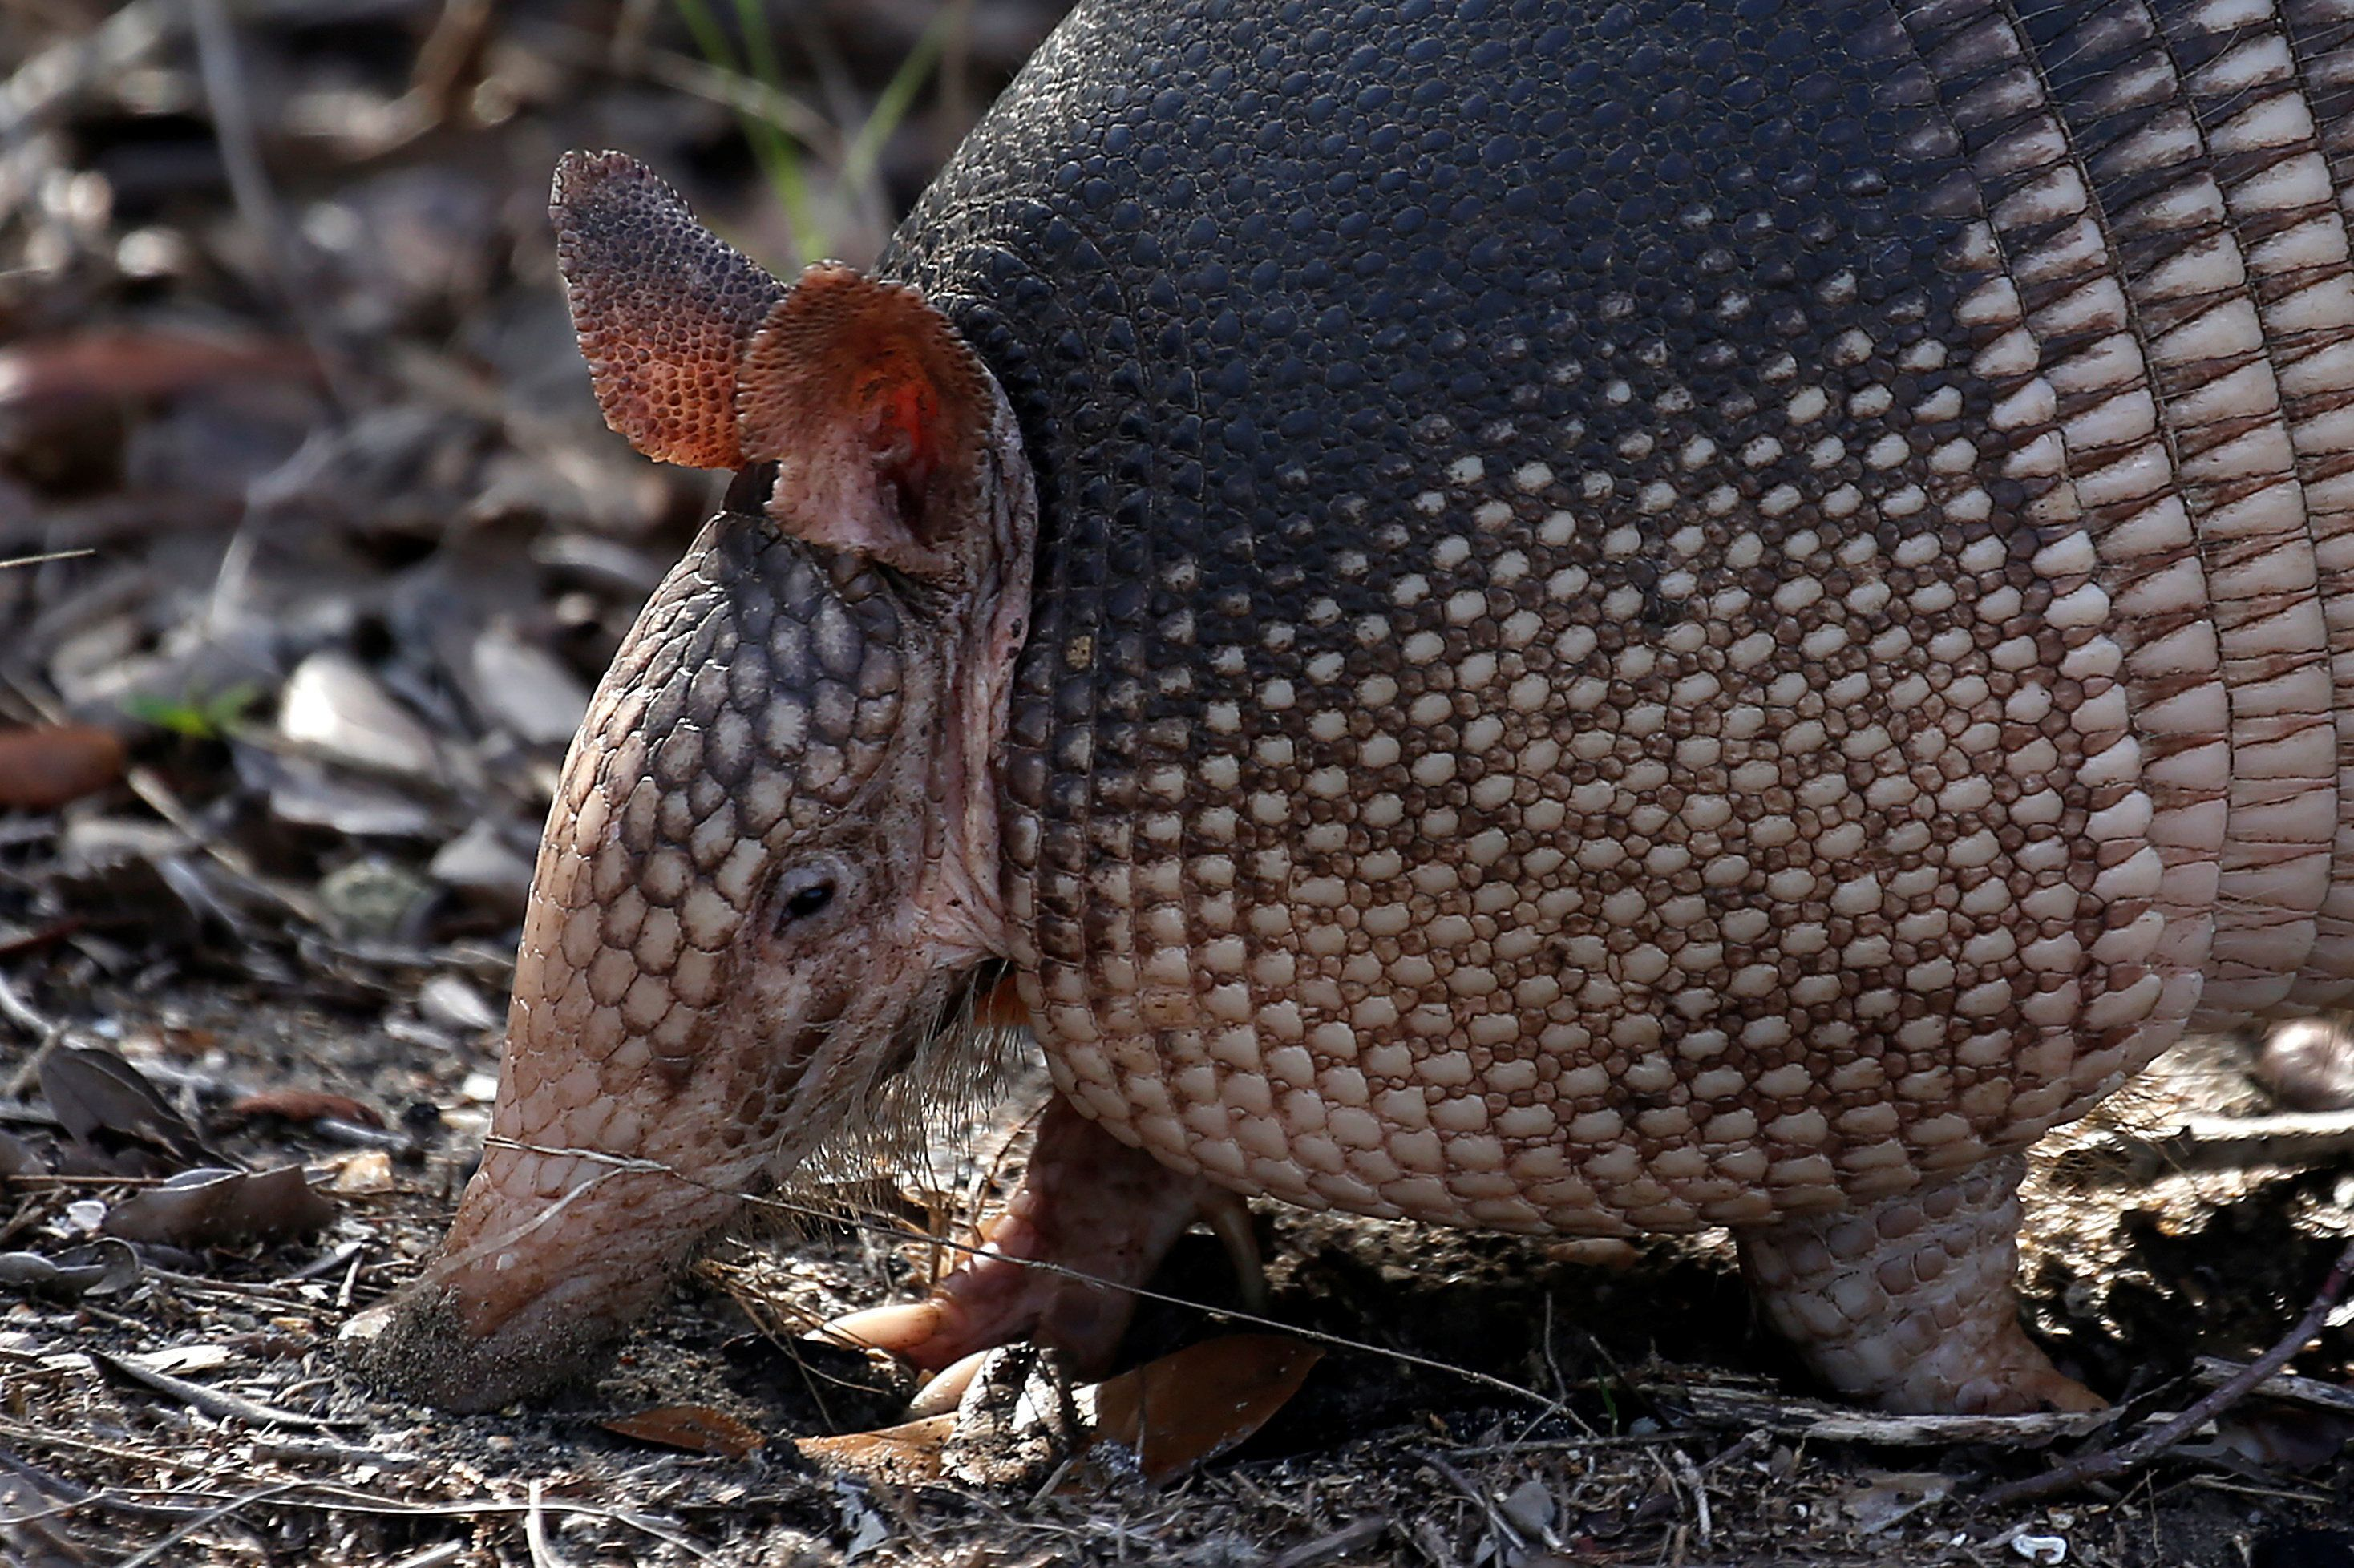 An armadillo forages for food on the ground in St Augustine, Florida January 4, 2017.   REUTERS/Carlo Allegri